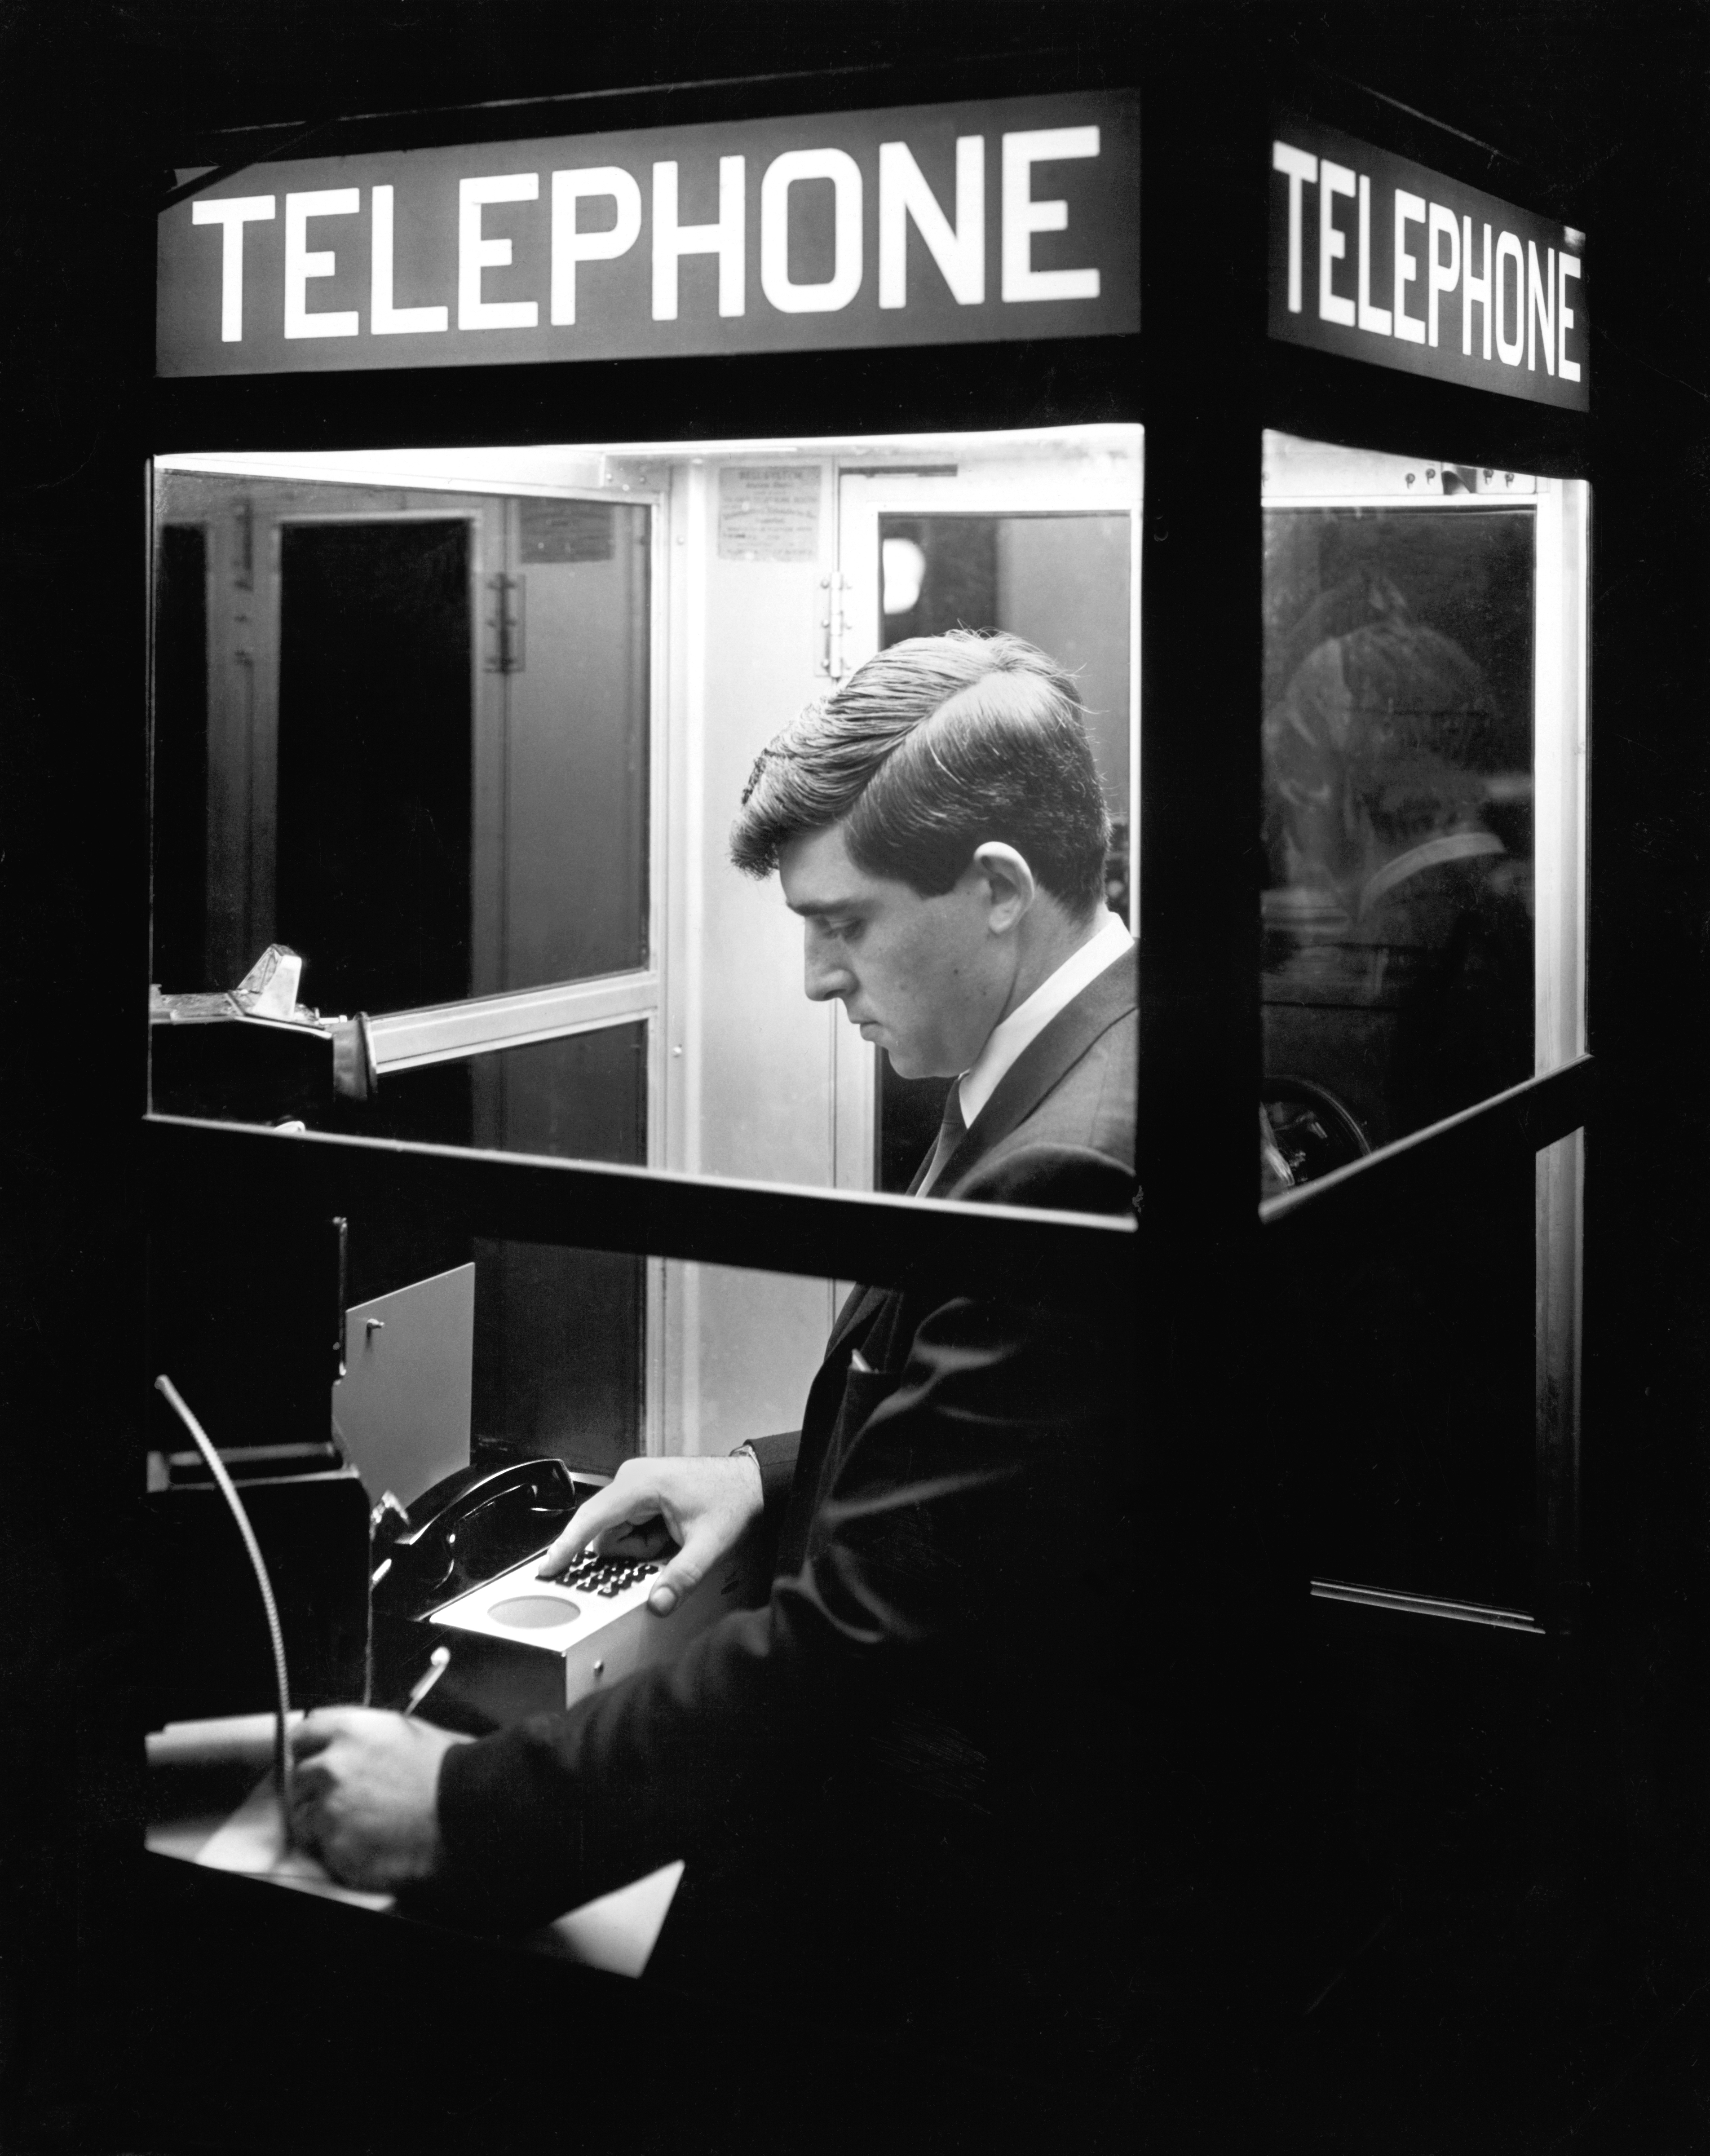 In 1968's version of mobile computing, a man uses a Honeywell portable terminal in a telephone booth